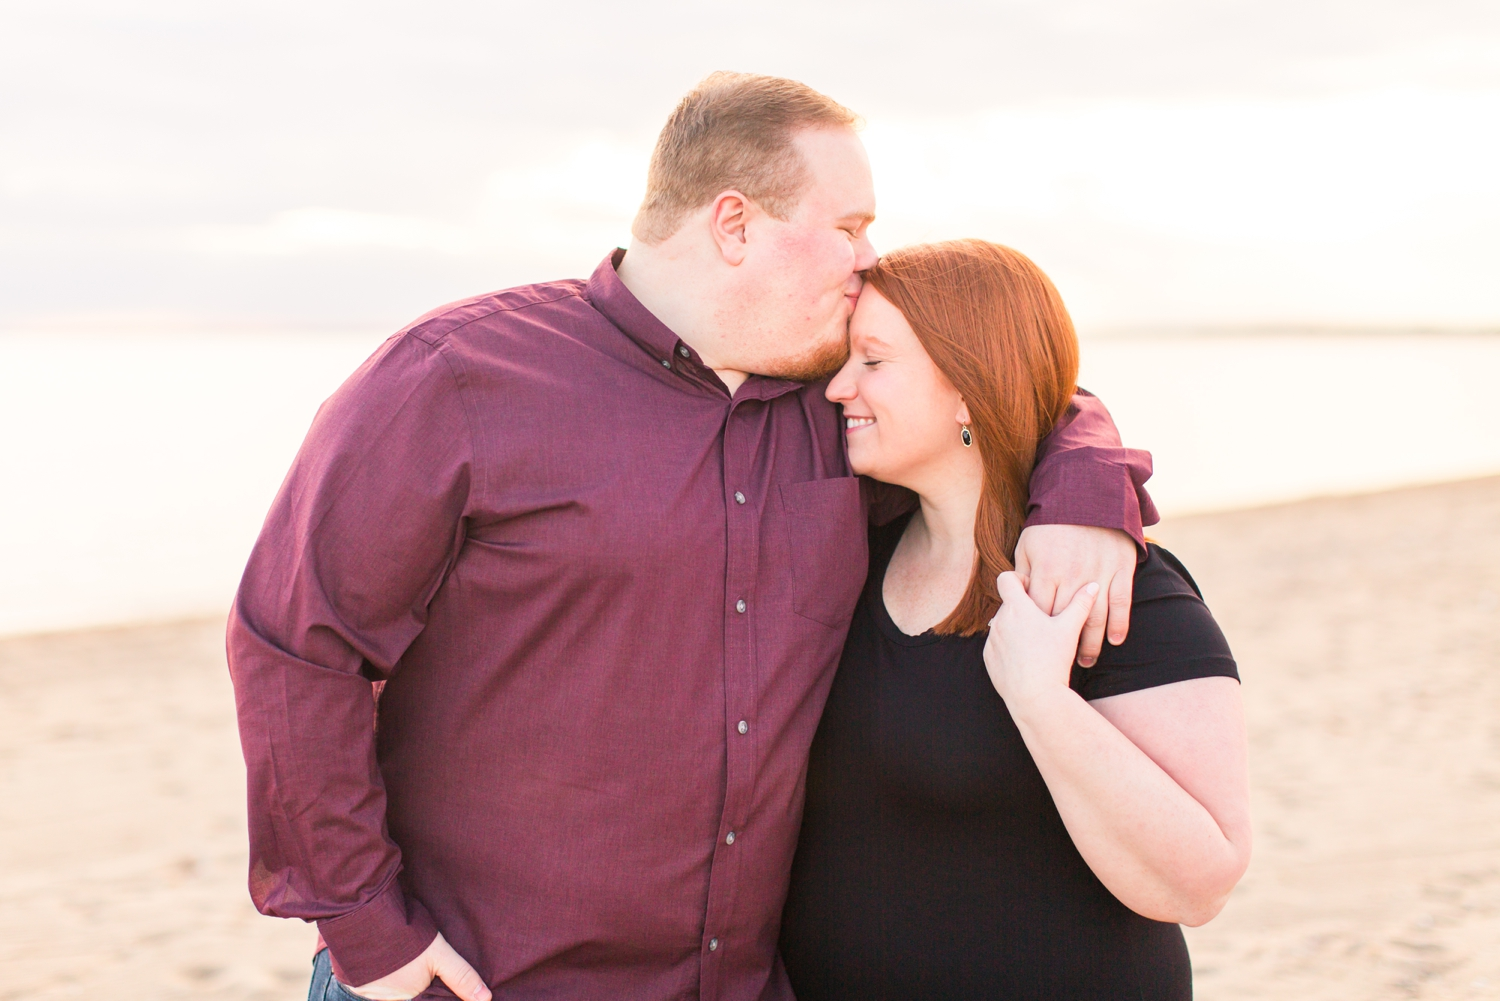 hammonasset-beach-engagement-session-madison-connecticut-wedding-photographer-shaina-lee-photography-photo-5.jpg